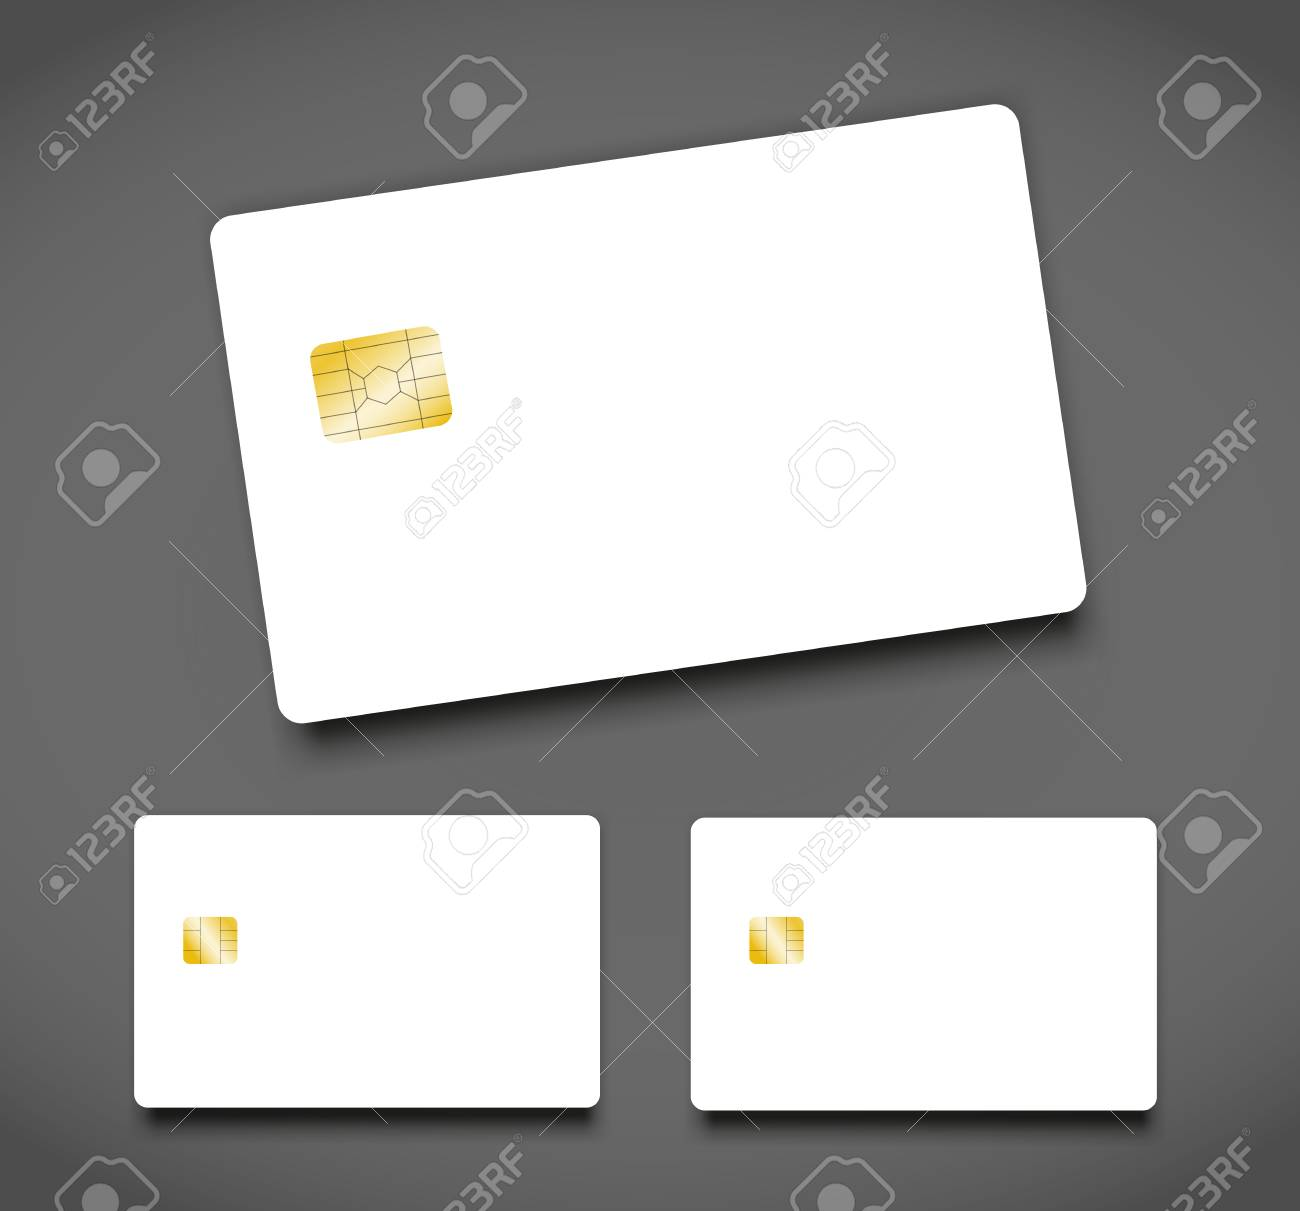 Banking Chip Credit Card Realistic Mockup Clear Plastic Card